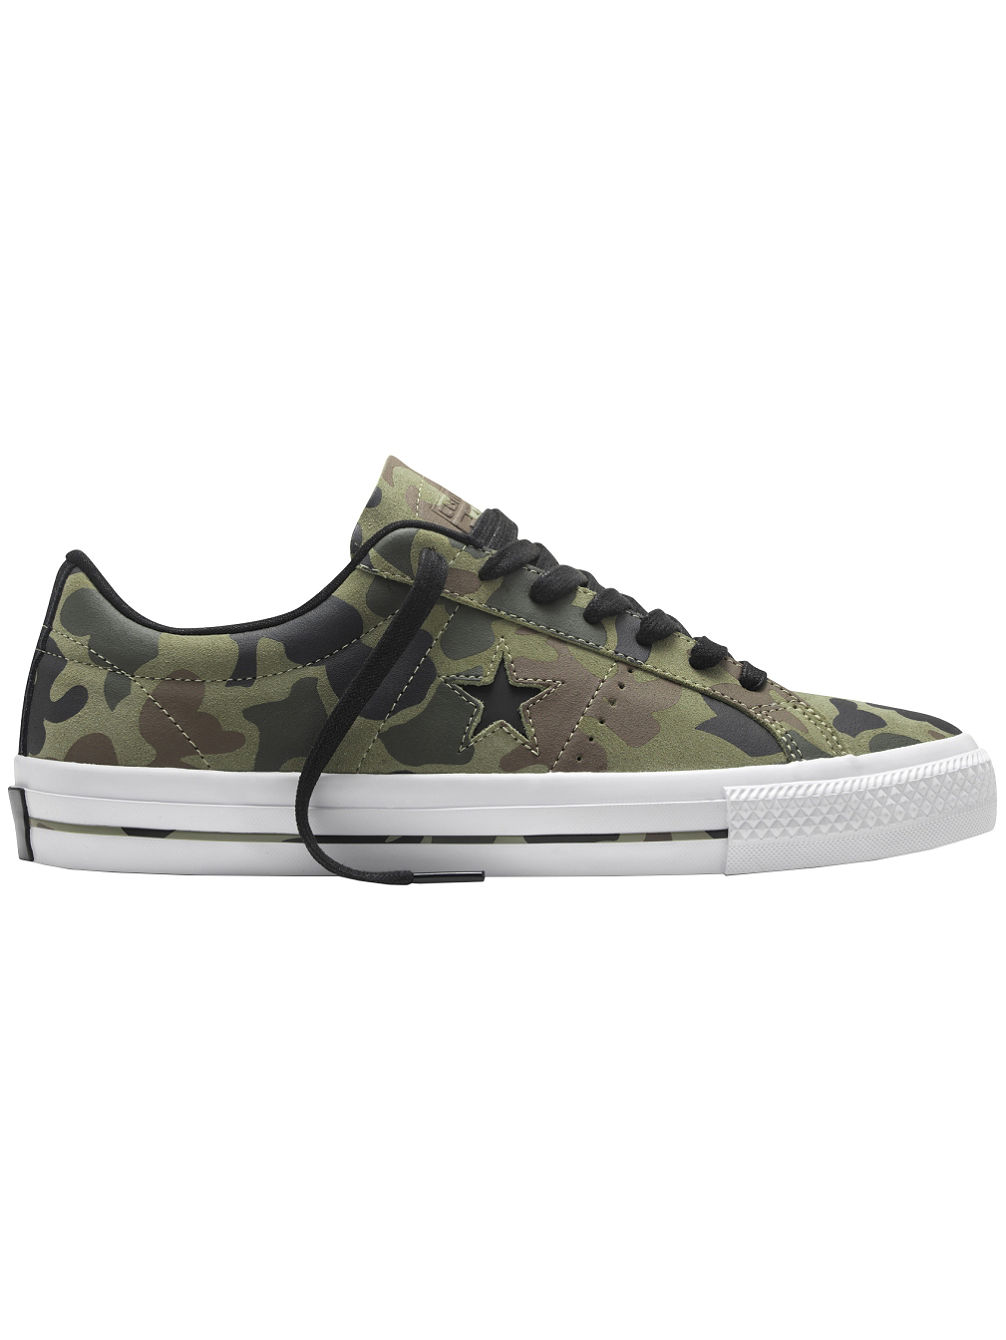 Converse CONS One Star Pro Skate Shoes - converse - blue-tomato.com